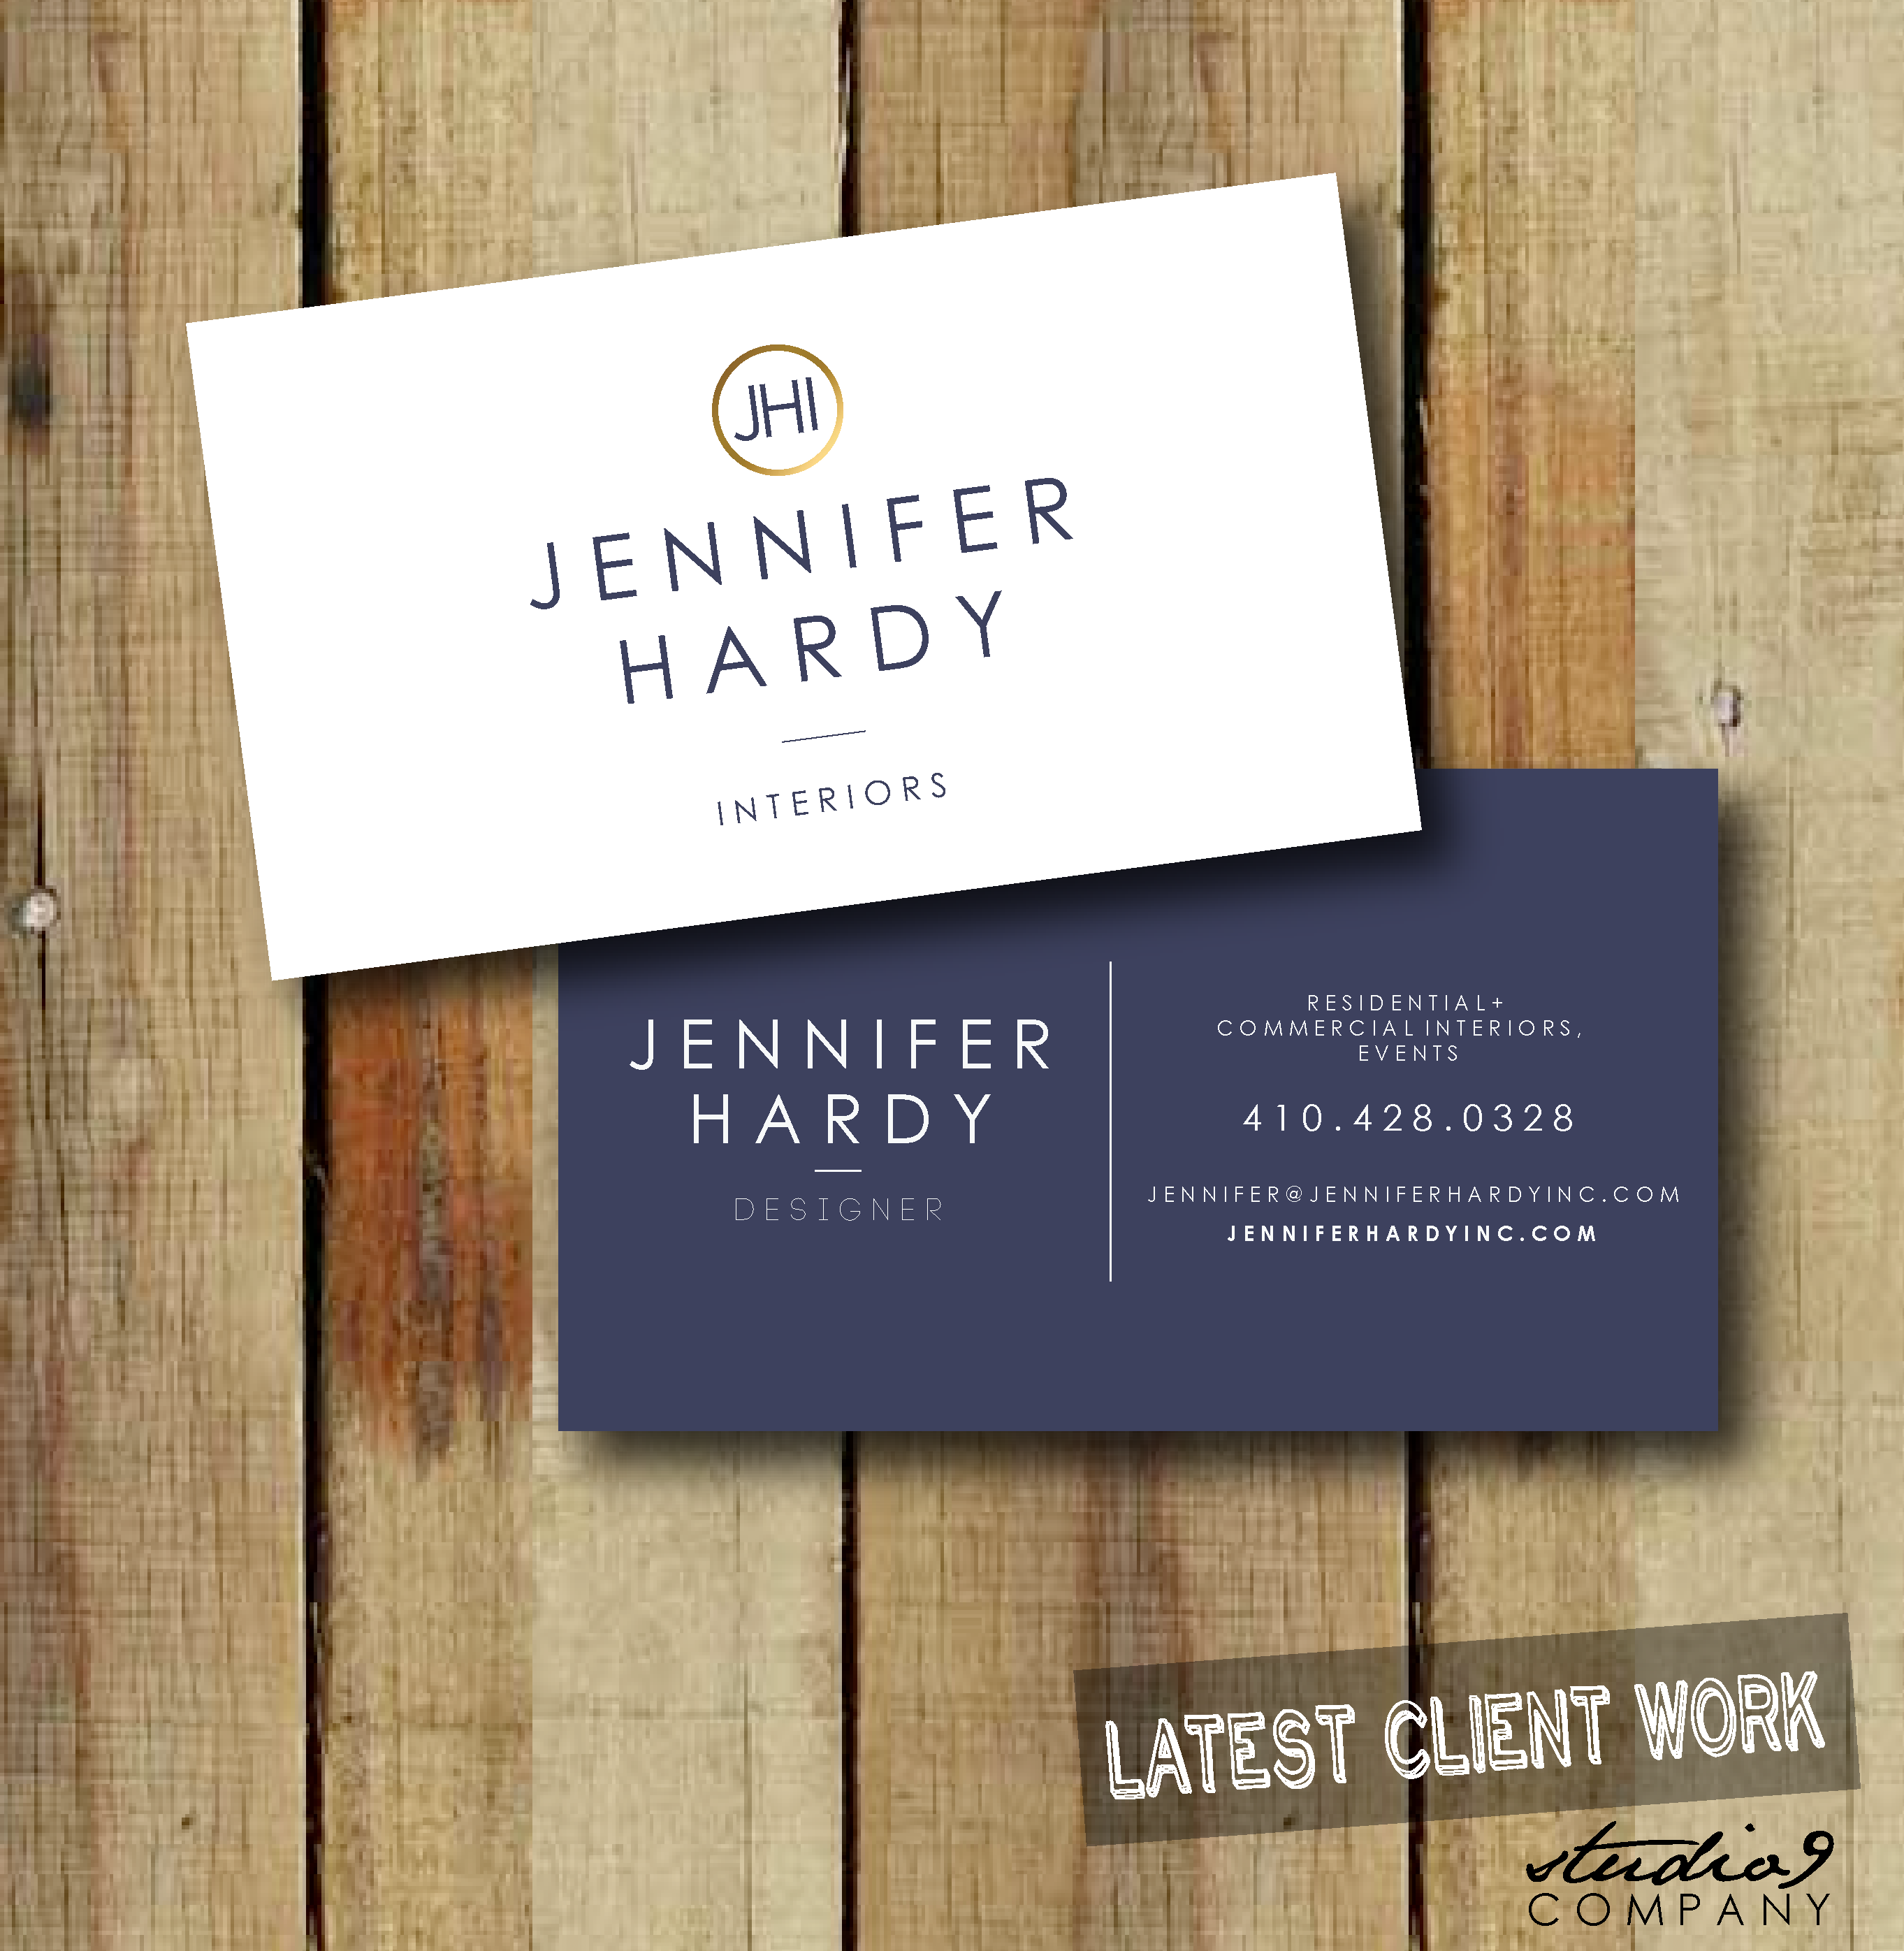 Simple classic business cards designed for jennifer hardy simple classic business cards designed for jennifer hardy interiors designed by studio9co etsyshopstudio9co reheart Choice Image